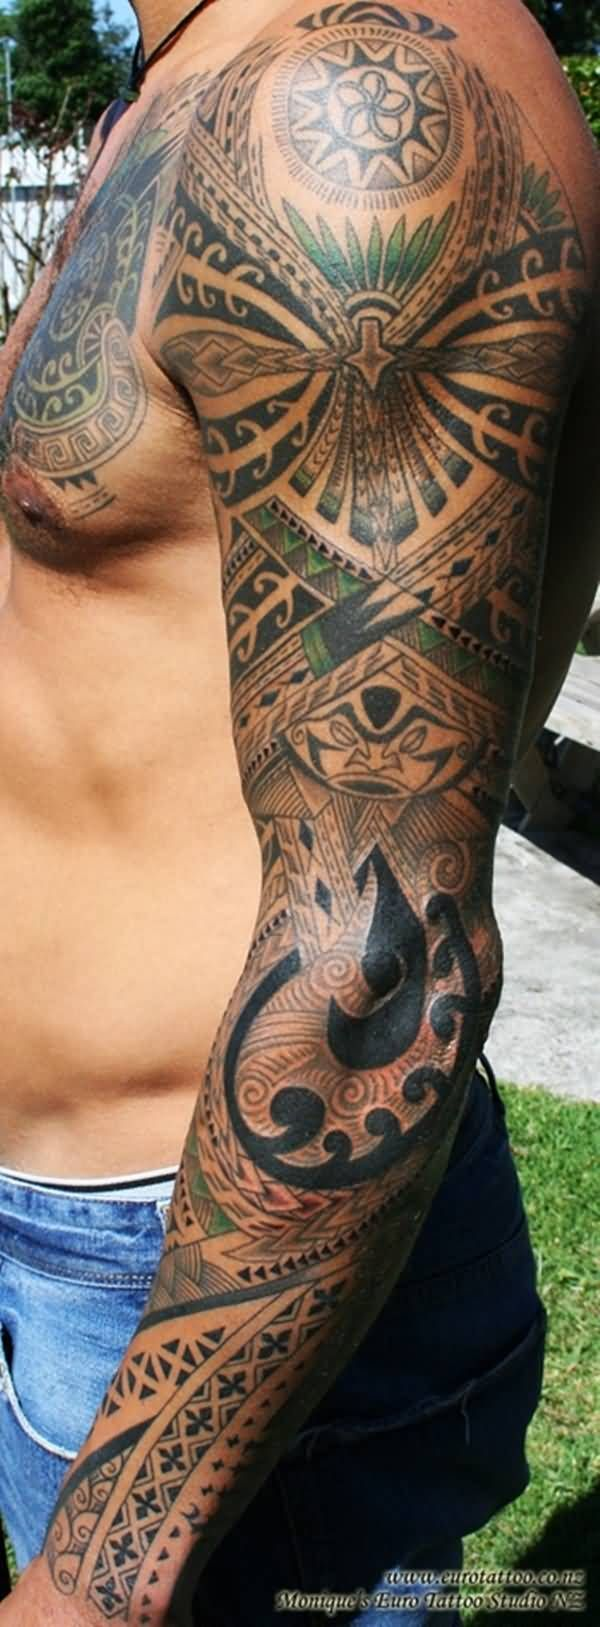 African Arm Tattoo african sleeve tattoo  designs & ideas page 2 ...